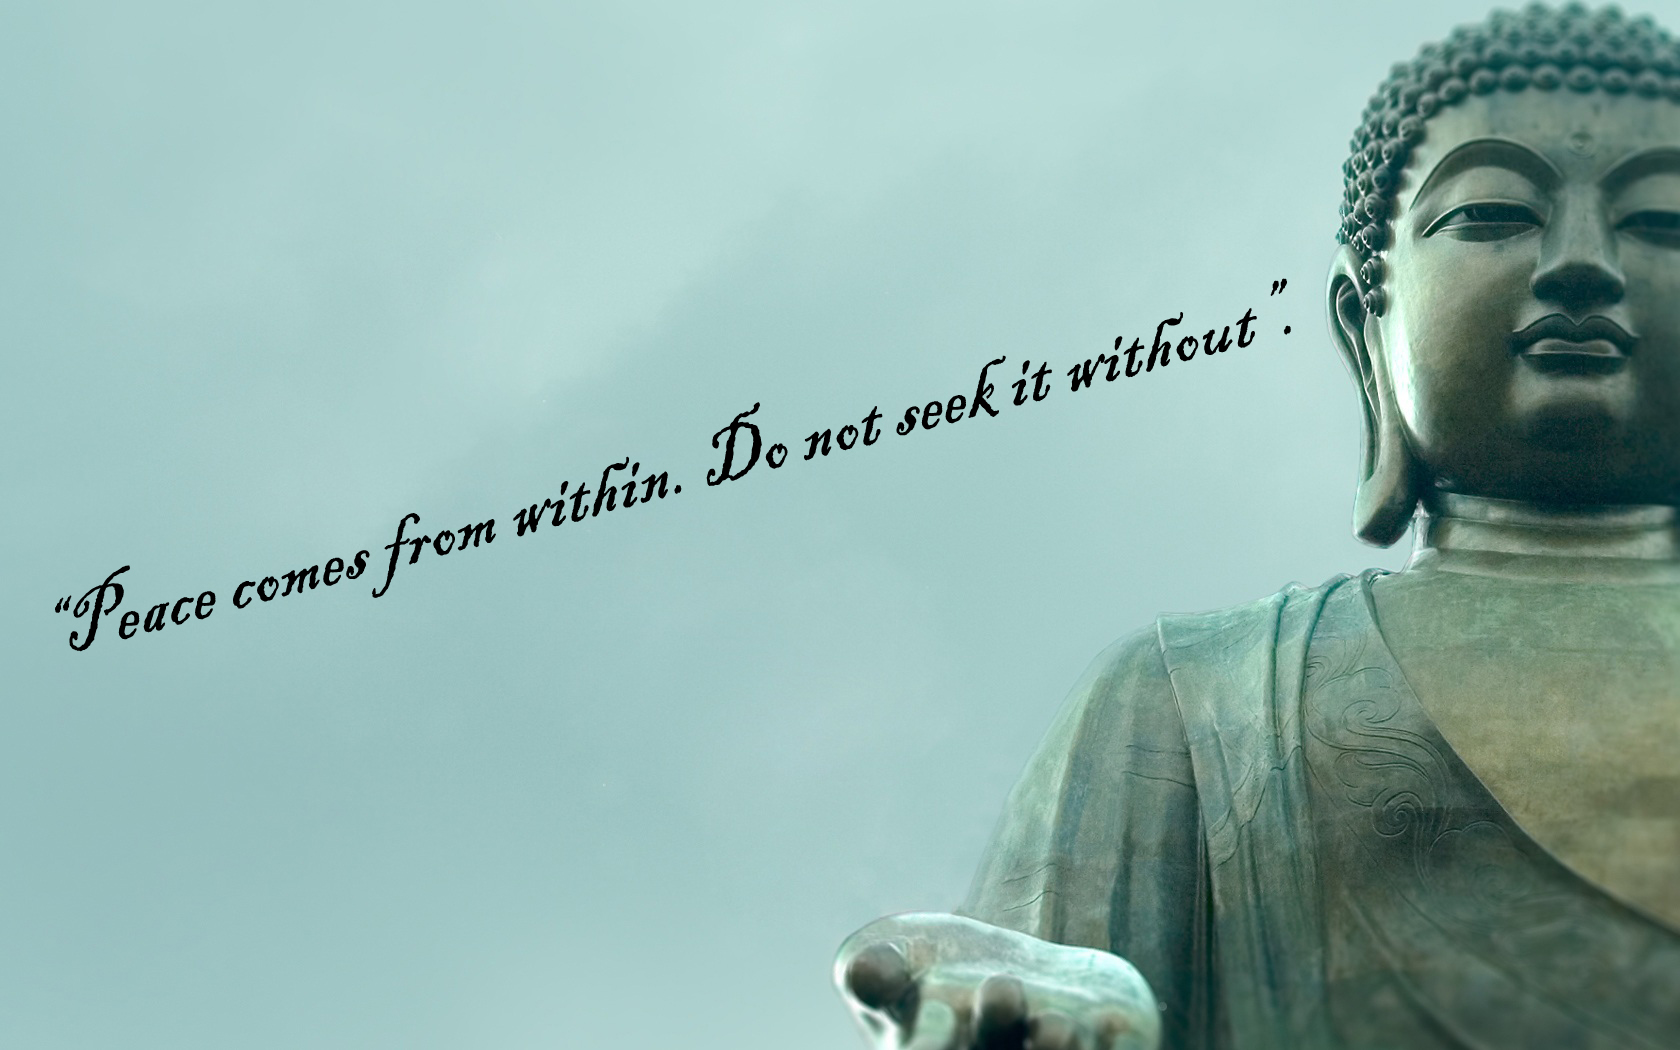 Quotes Religion Wallpaper 1680x1050 Quotes Religion Buddha 1680x1050